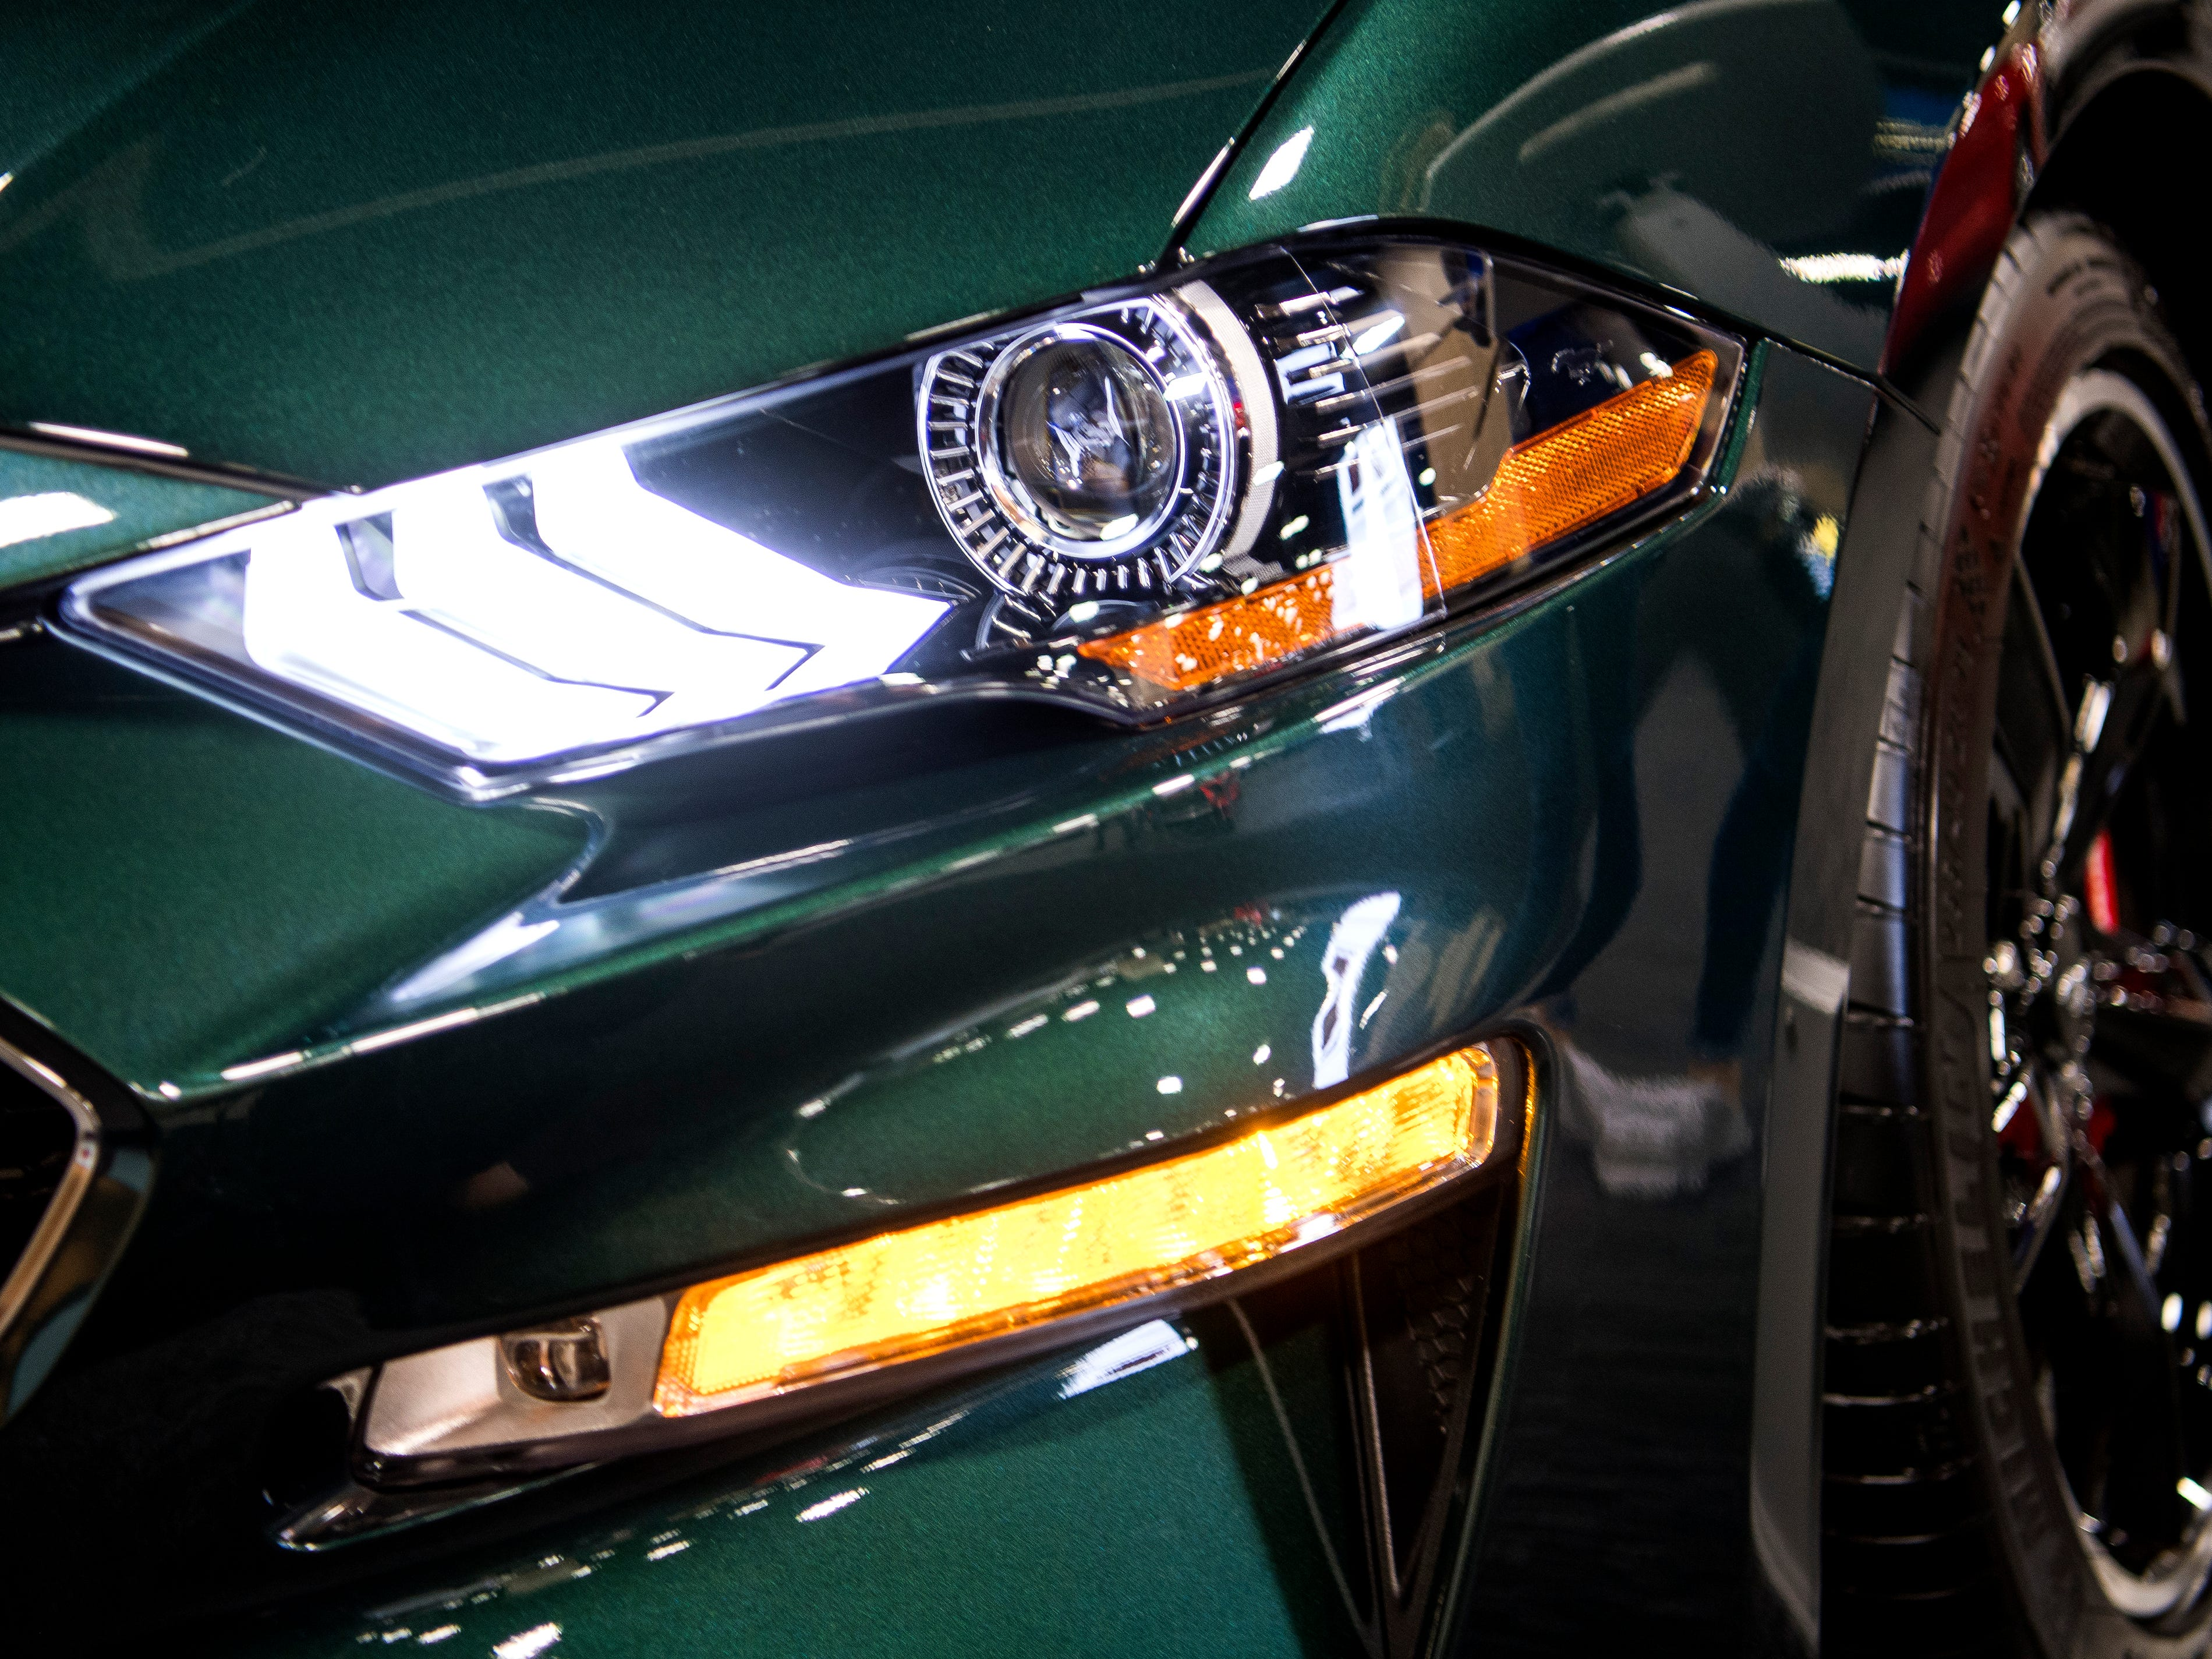 The Ford Mustang BULLITT at the Knox News Auto Show held at the Knoxville Convention Center on Friday, February 22, 2019.